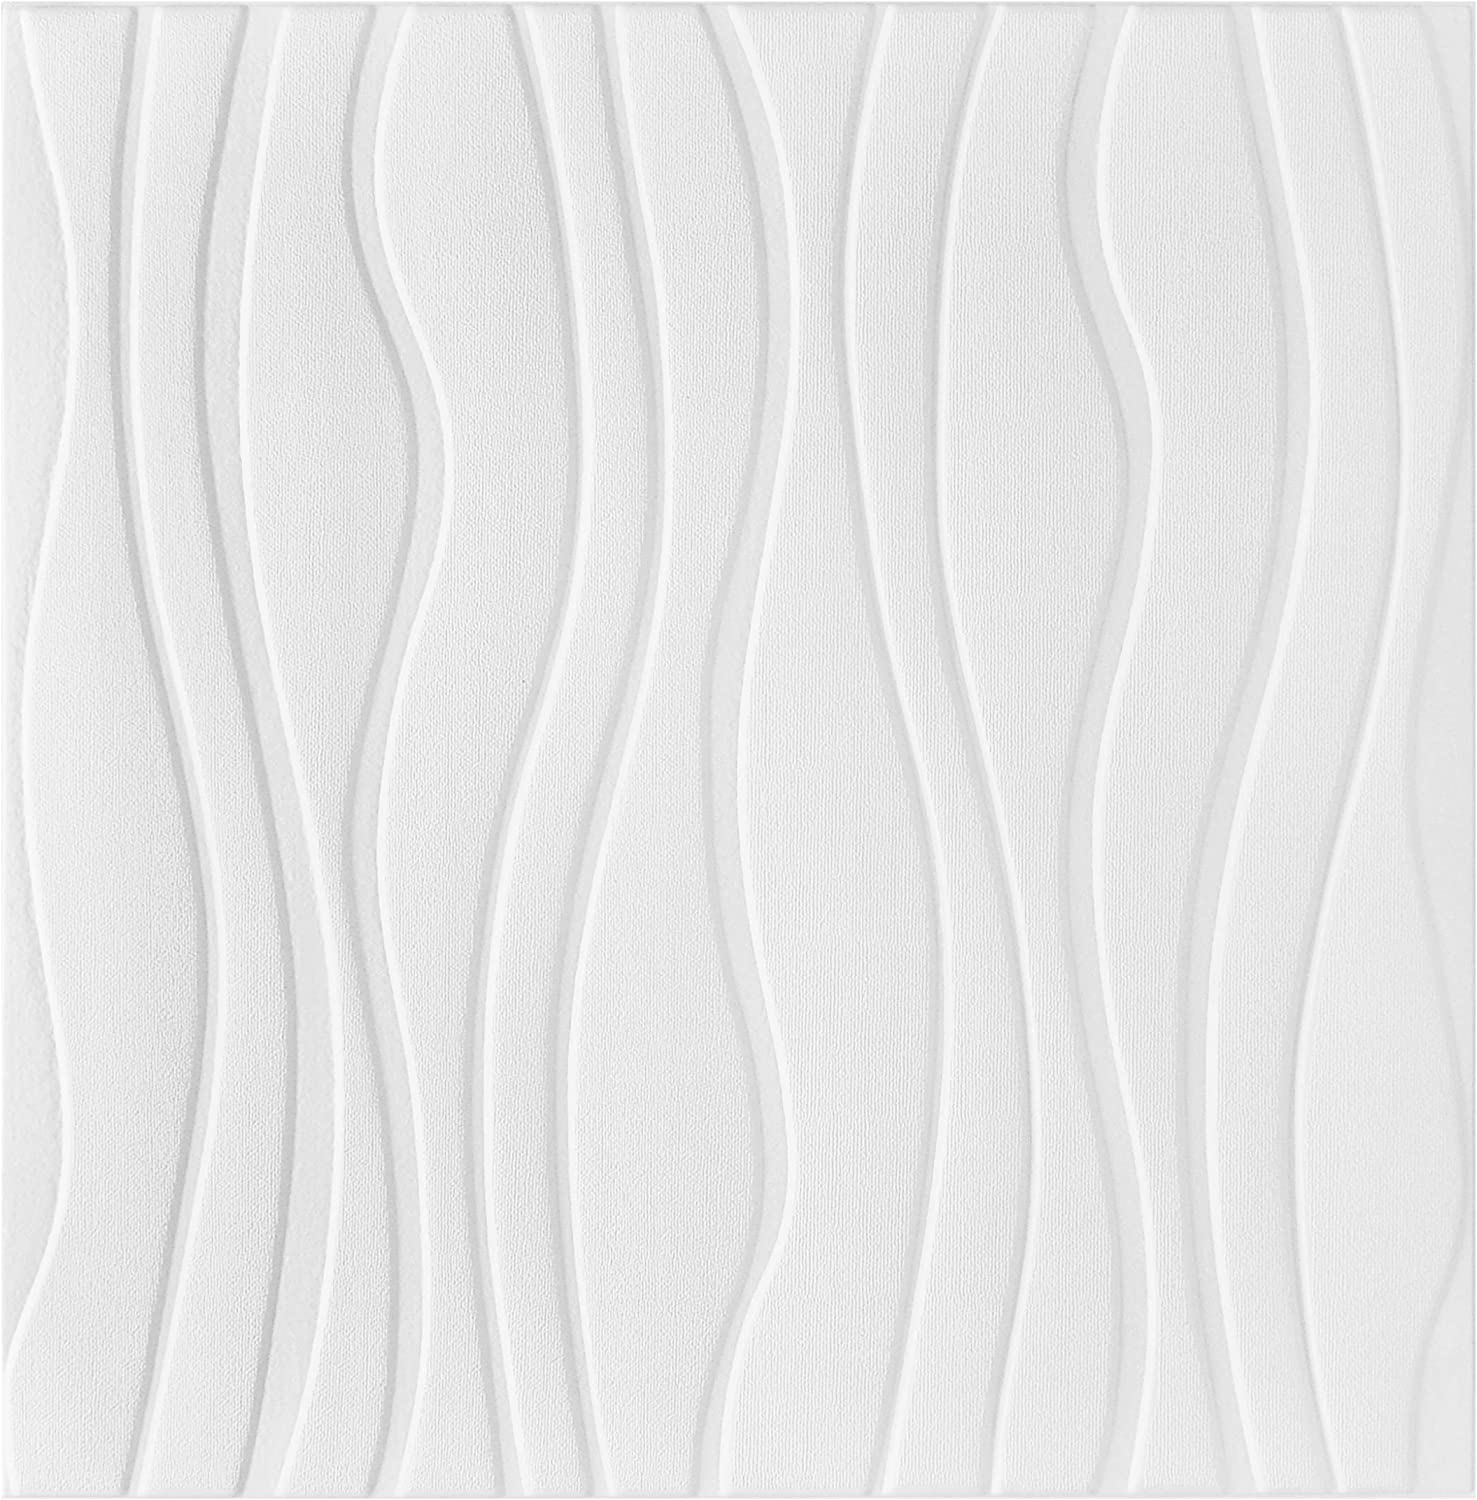 Fabulous Décor: Wave Embossed 3D Thick 8mm Wall Panels Soft Foam Peel and Stick Textured Wallpaper Home Decoration, 4-Pack of 2.3ft X 2.3ft Tota 21 SqFt (White)